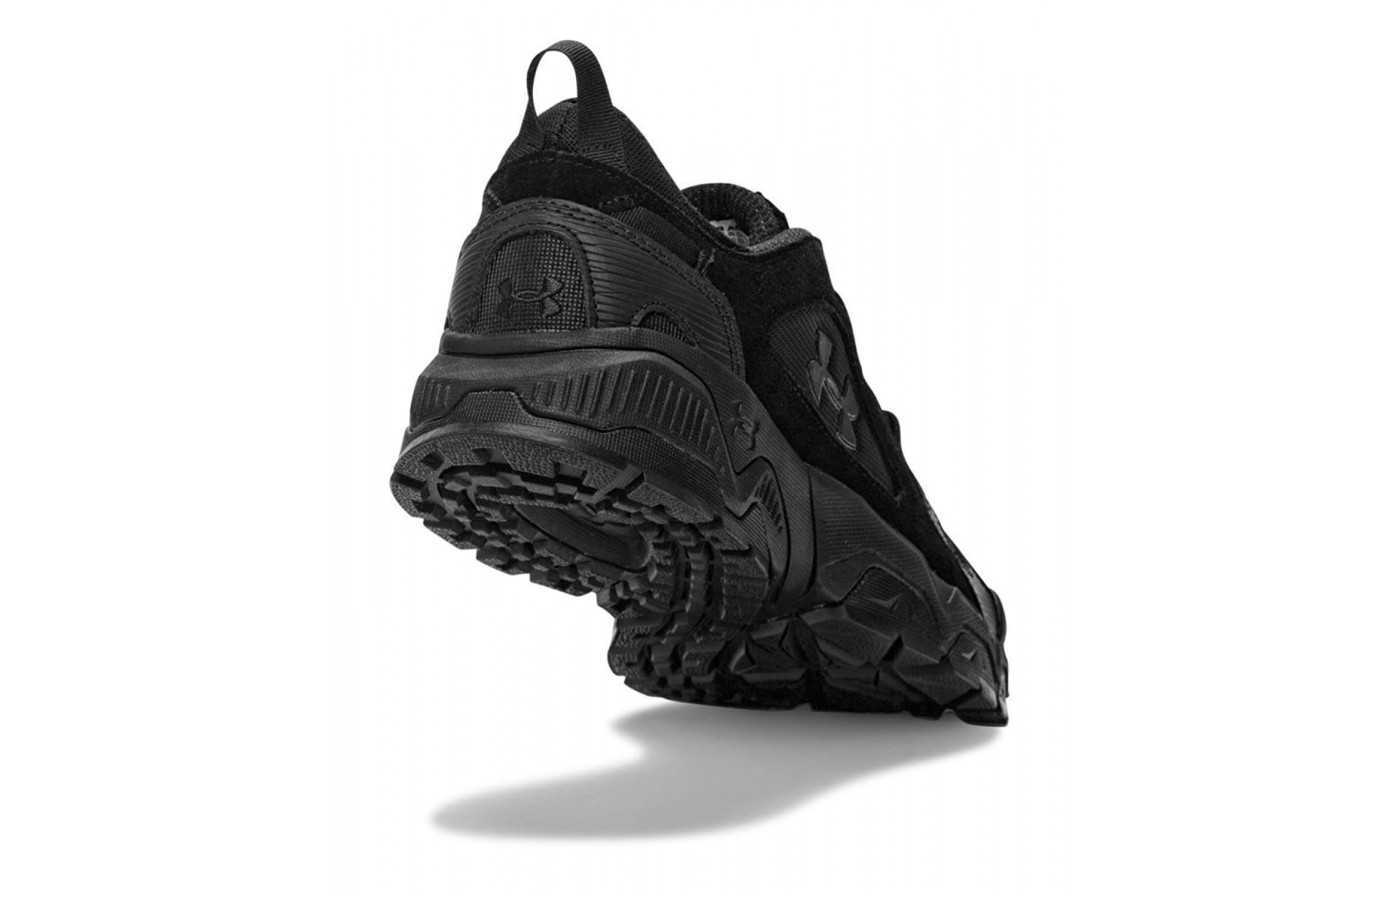 The outsole is lined in an aggressive lug pattern.